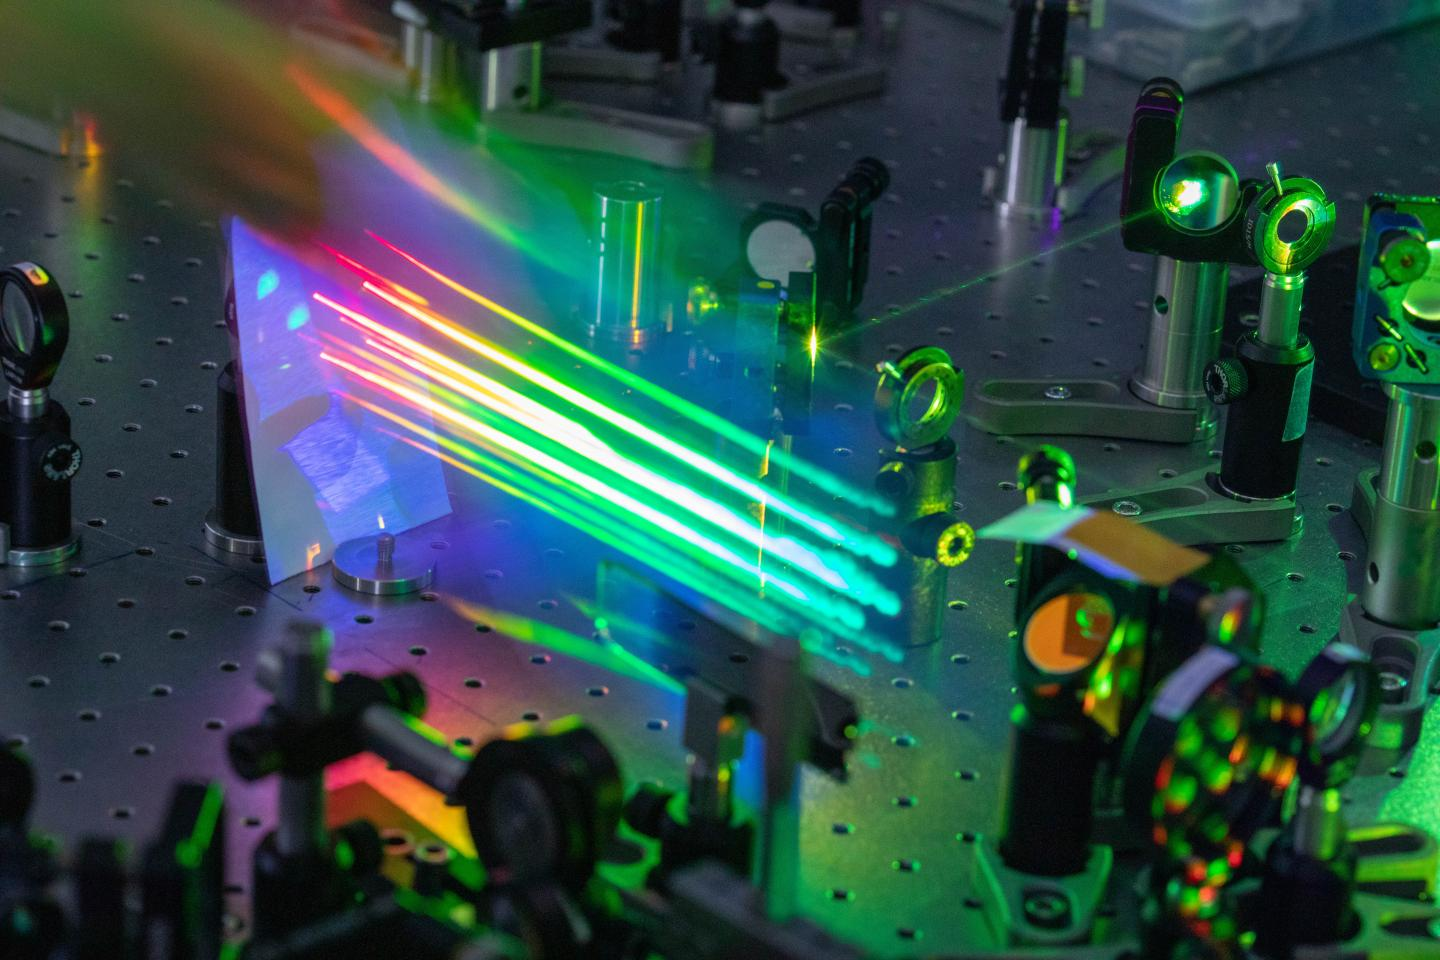 Ultra-short pulse lasers used at the Physics Department of the Politecnico di Milano to study photovoltaic cells